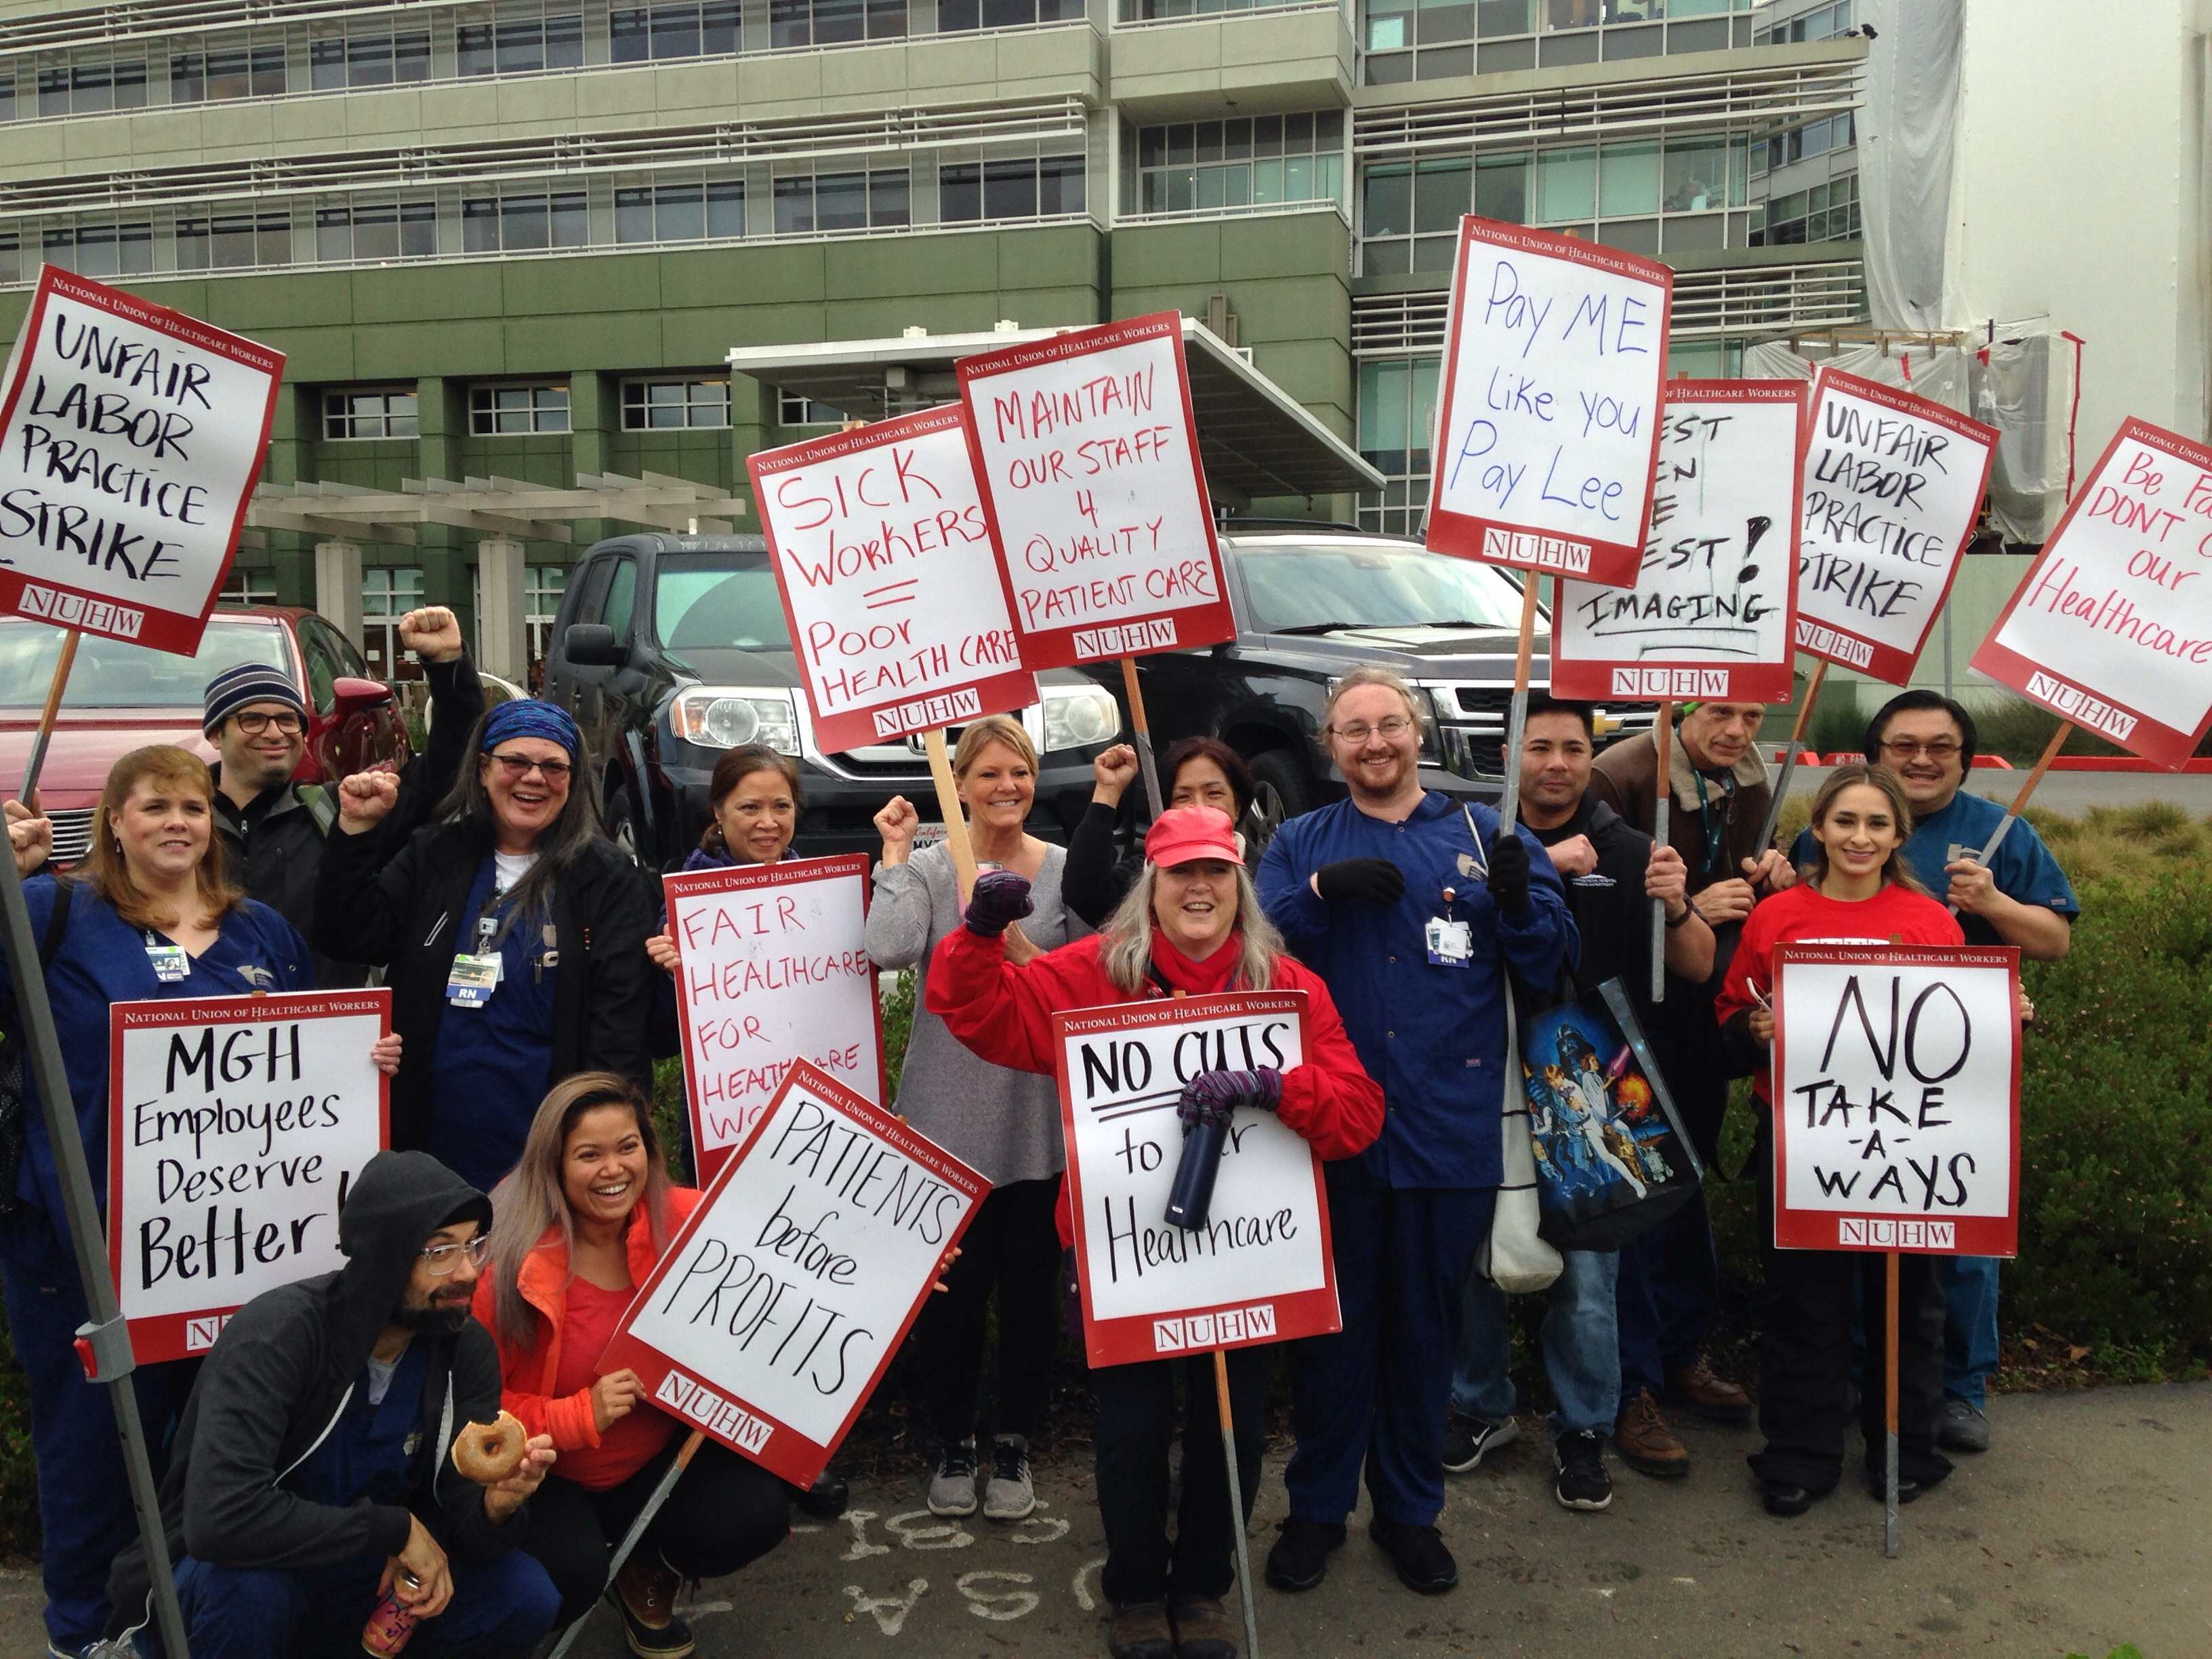 Marin General workers strike to preserve health care benefits and